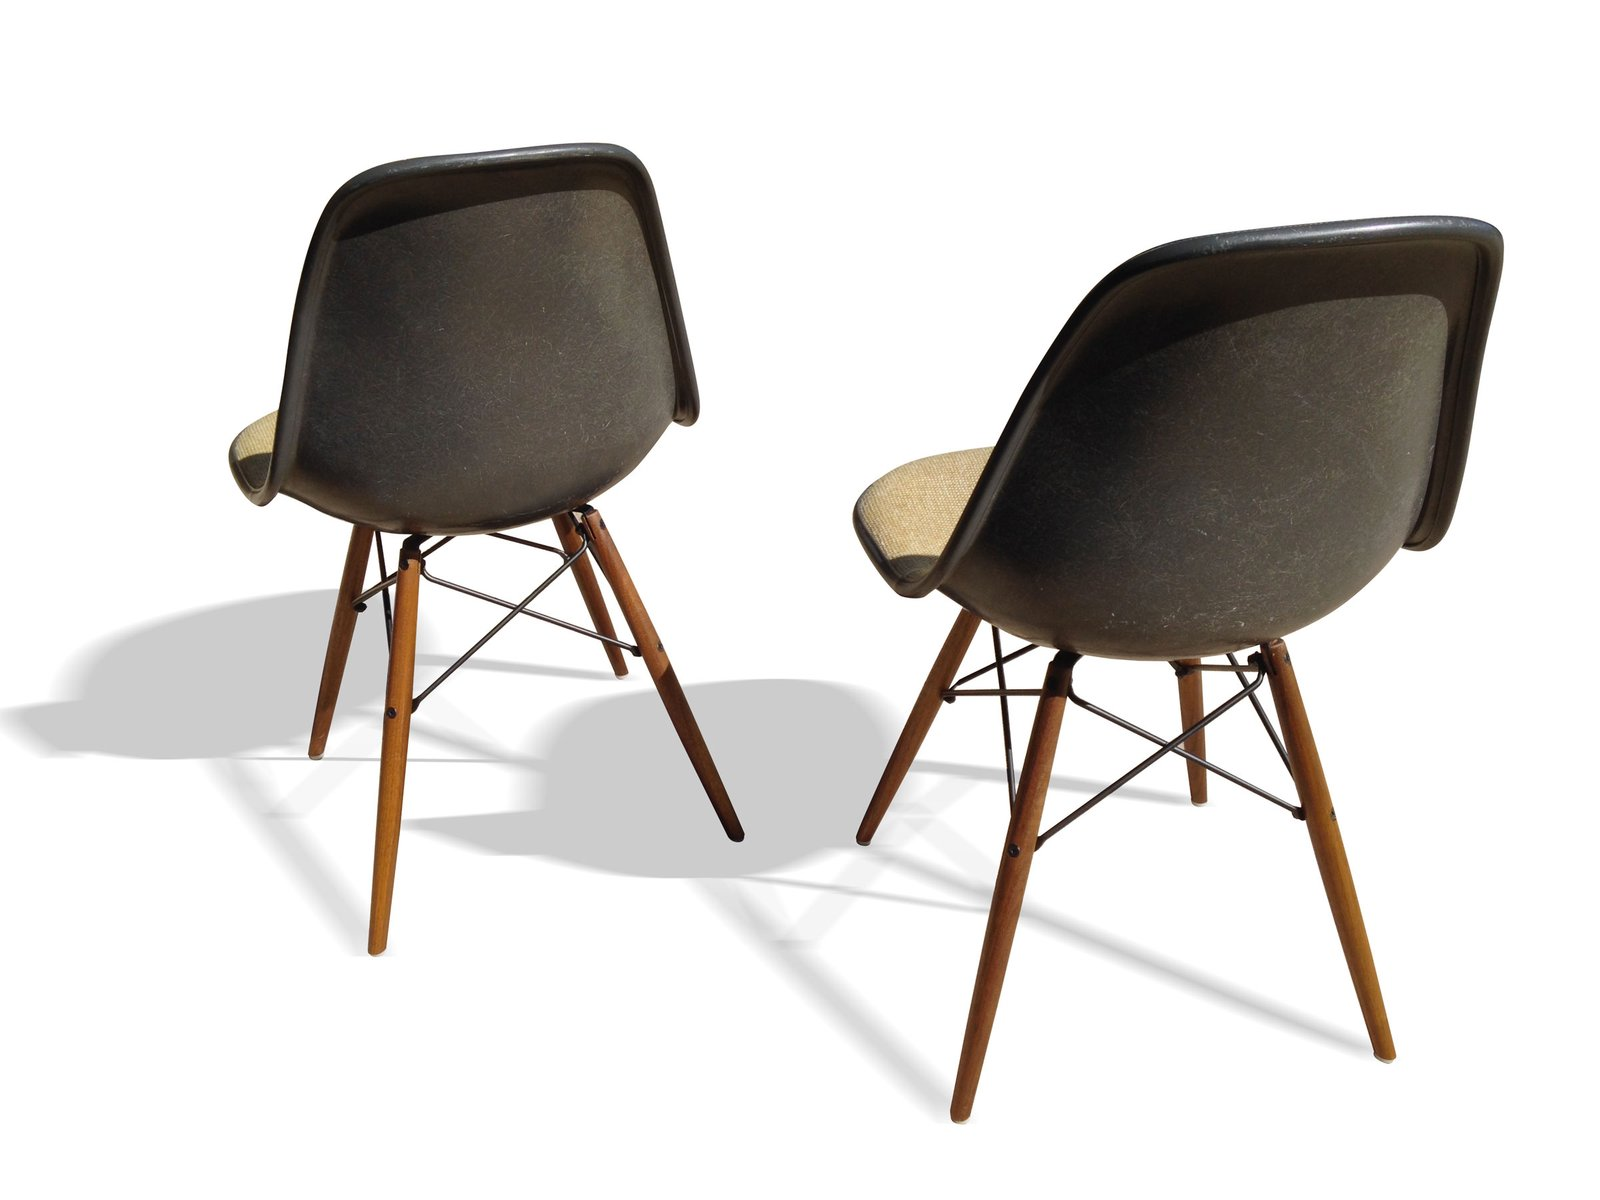 elephant grey dsw chairs by charles and ray eames for herman miller set of 2 for sale at pamono. Black Bedroom Furniture Sets. Home Design Ideas